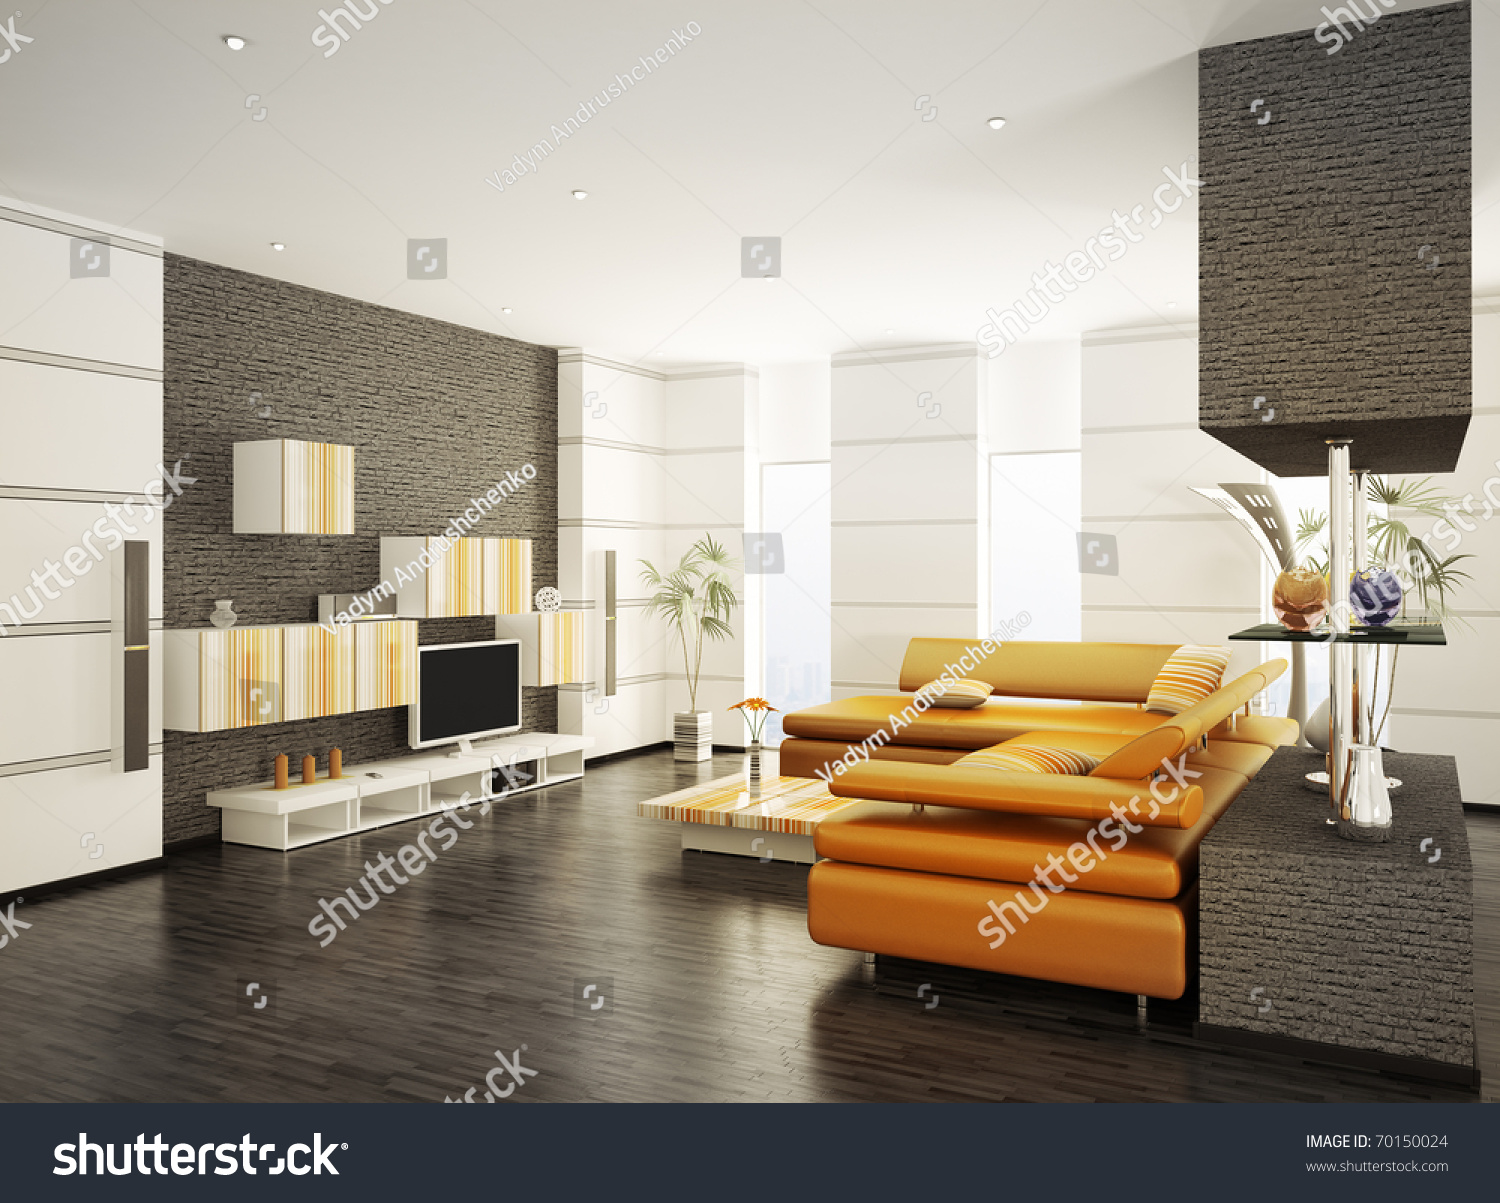 Modern Living Room With Orange Sofa And LCD Interior 3d Render Part 54